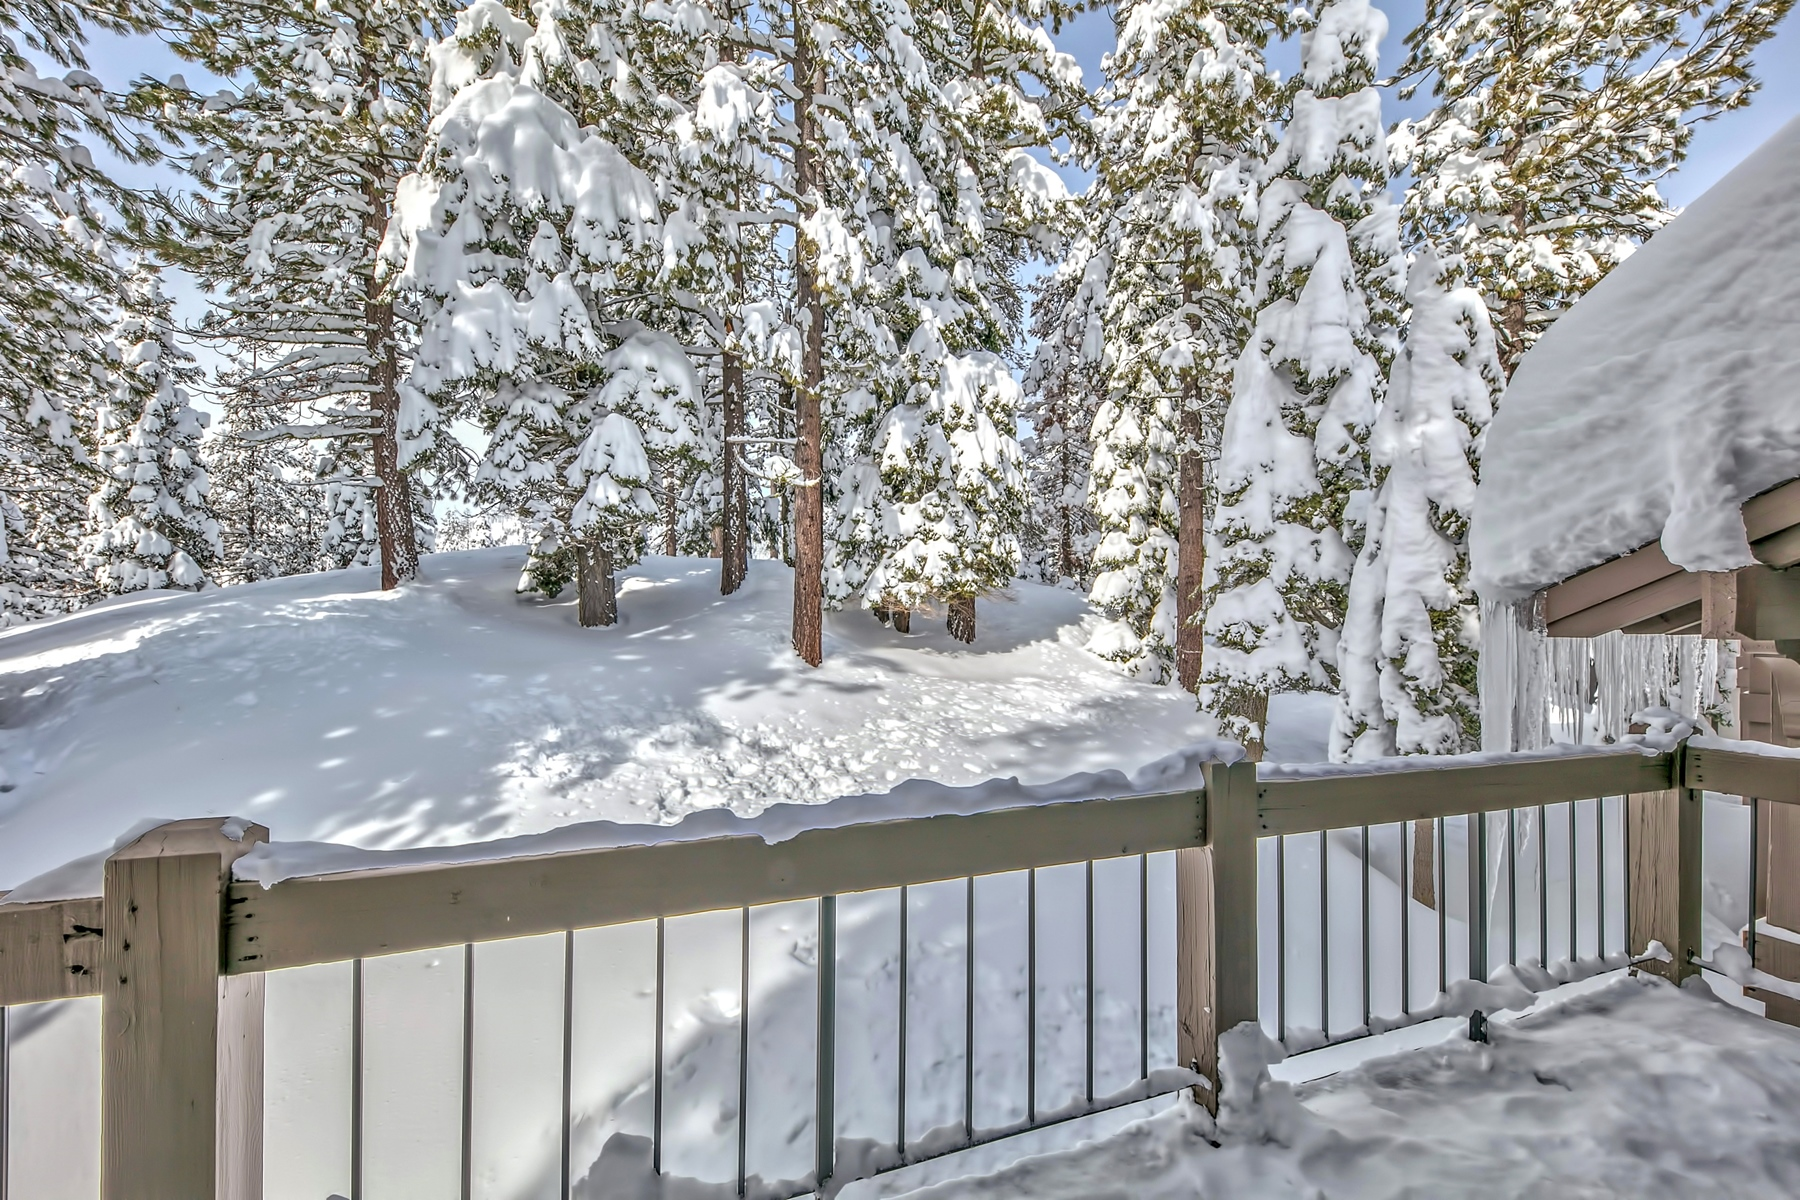 Additional photo for property listing at 227 Squaw Valley Road. #24, Olympic Valley, CA 227 Squaw Valley Road #24 Olympic Valley, California 96146 United States